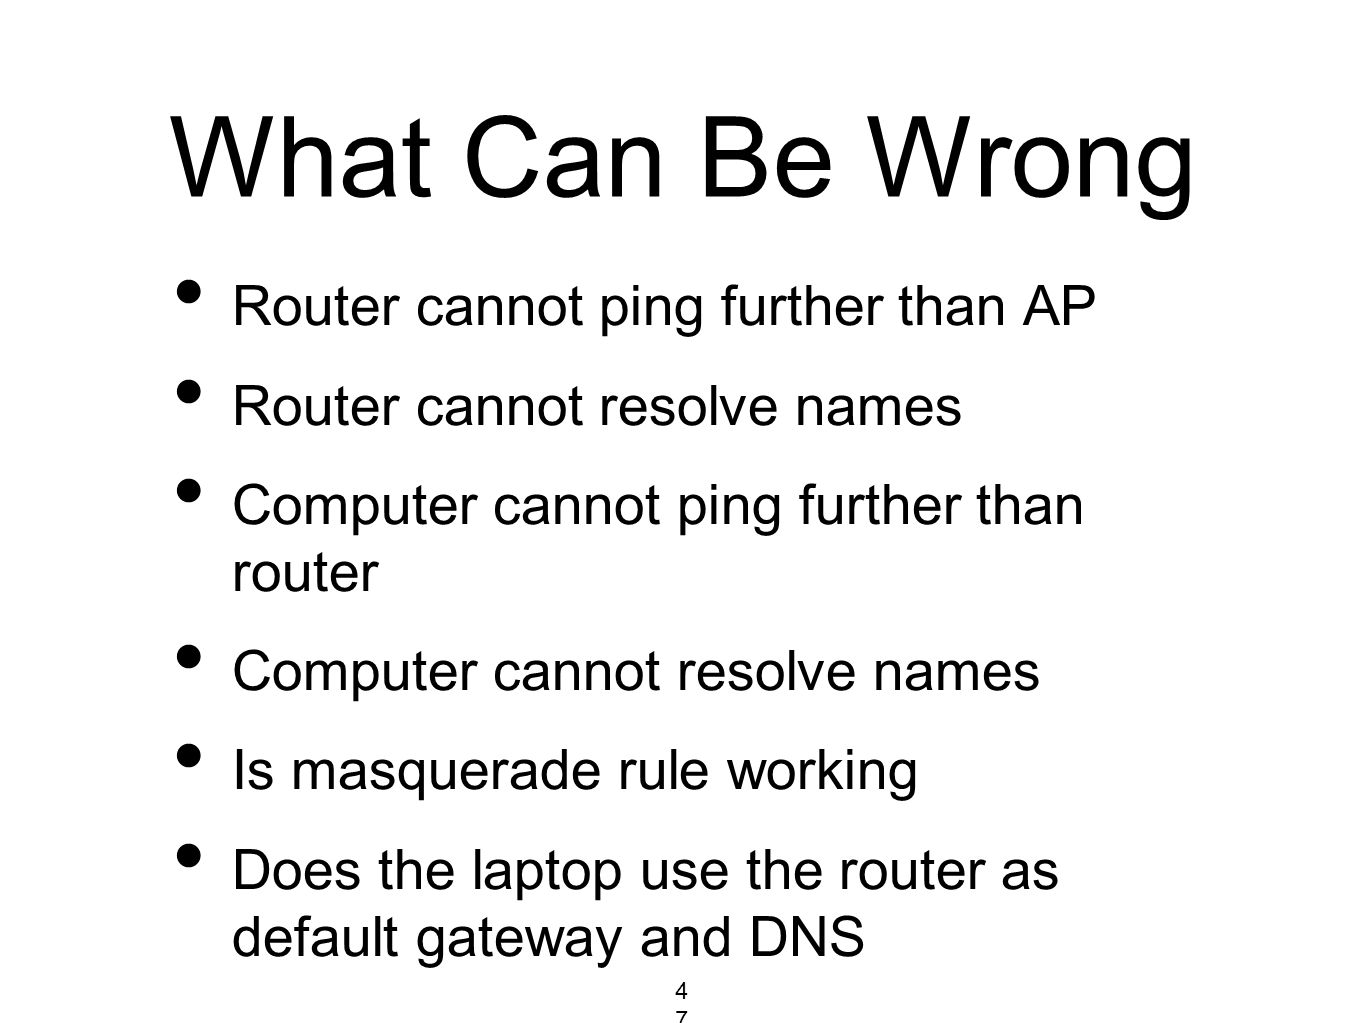 What Can Be Wrong Router cannot ping further than AP Router cannot resolve names Computer cannot ping further than router Computer cannot resolve name